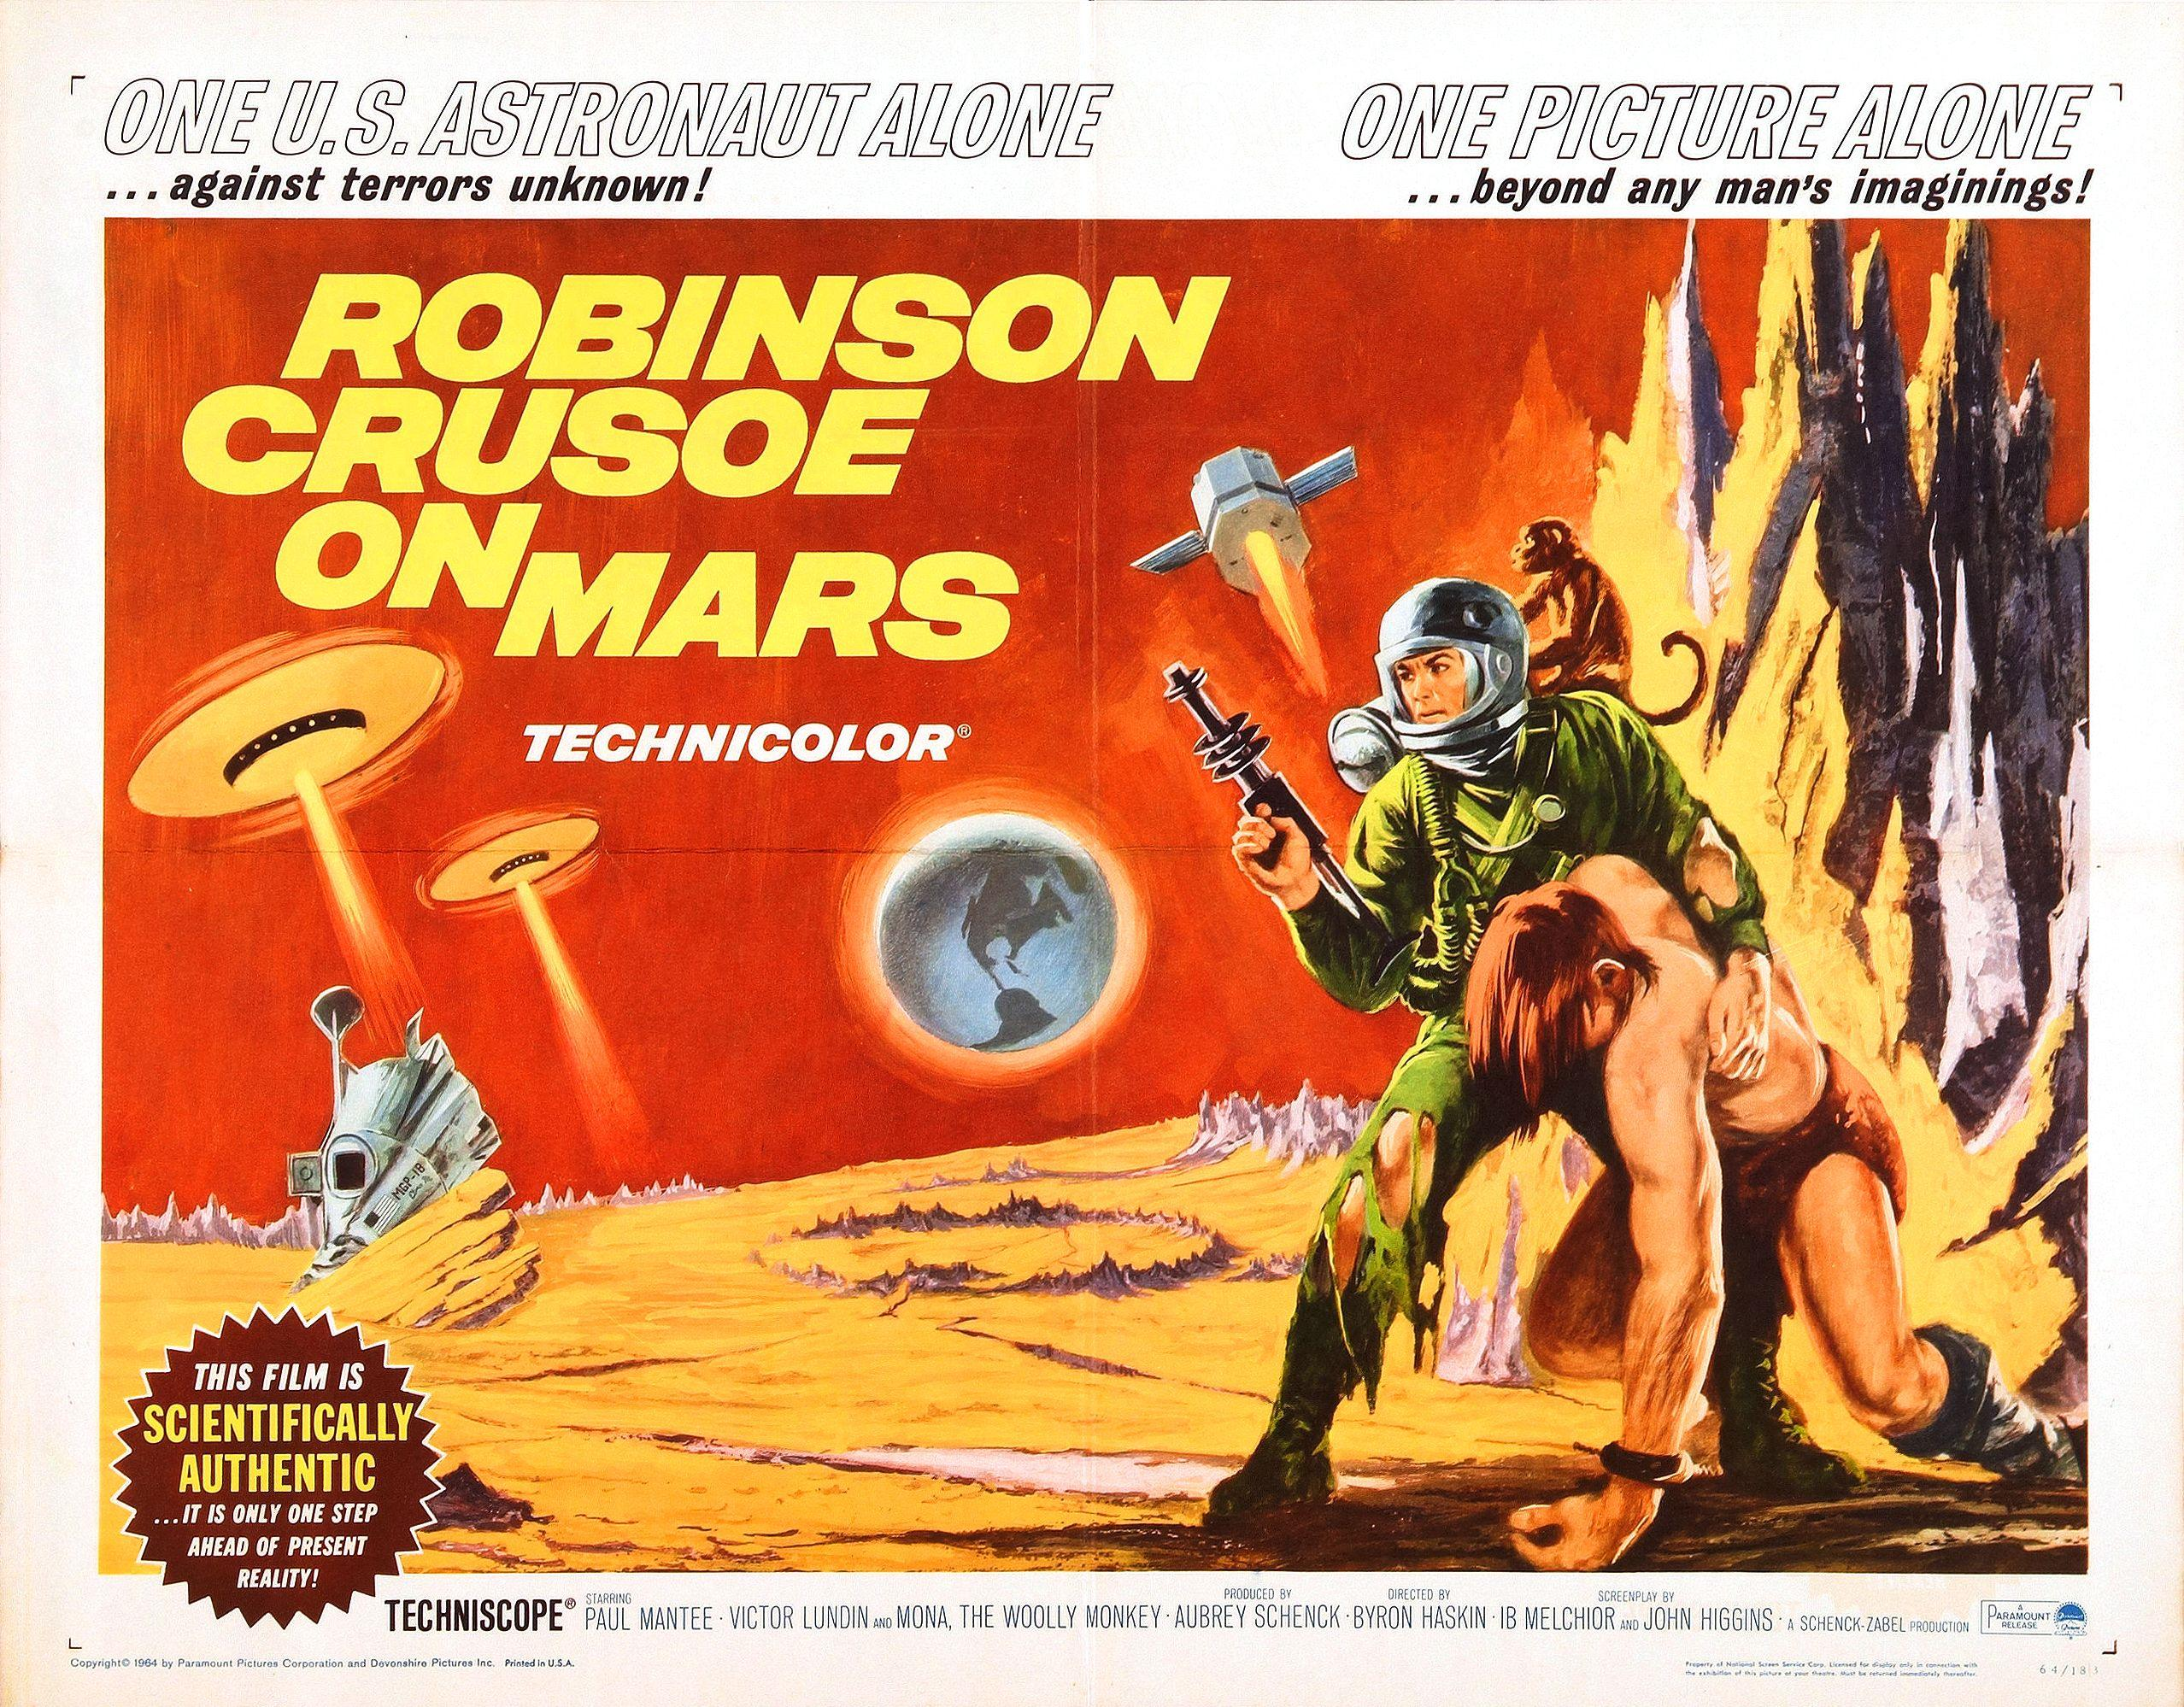 black gate acirc articles acirc that movie about the guy who s stranded on robinson crusoe on mars poster small